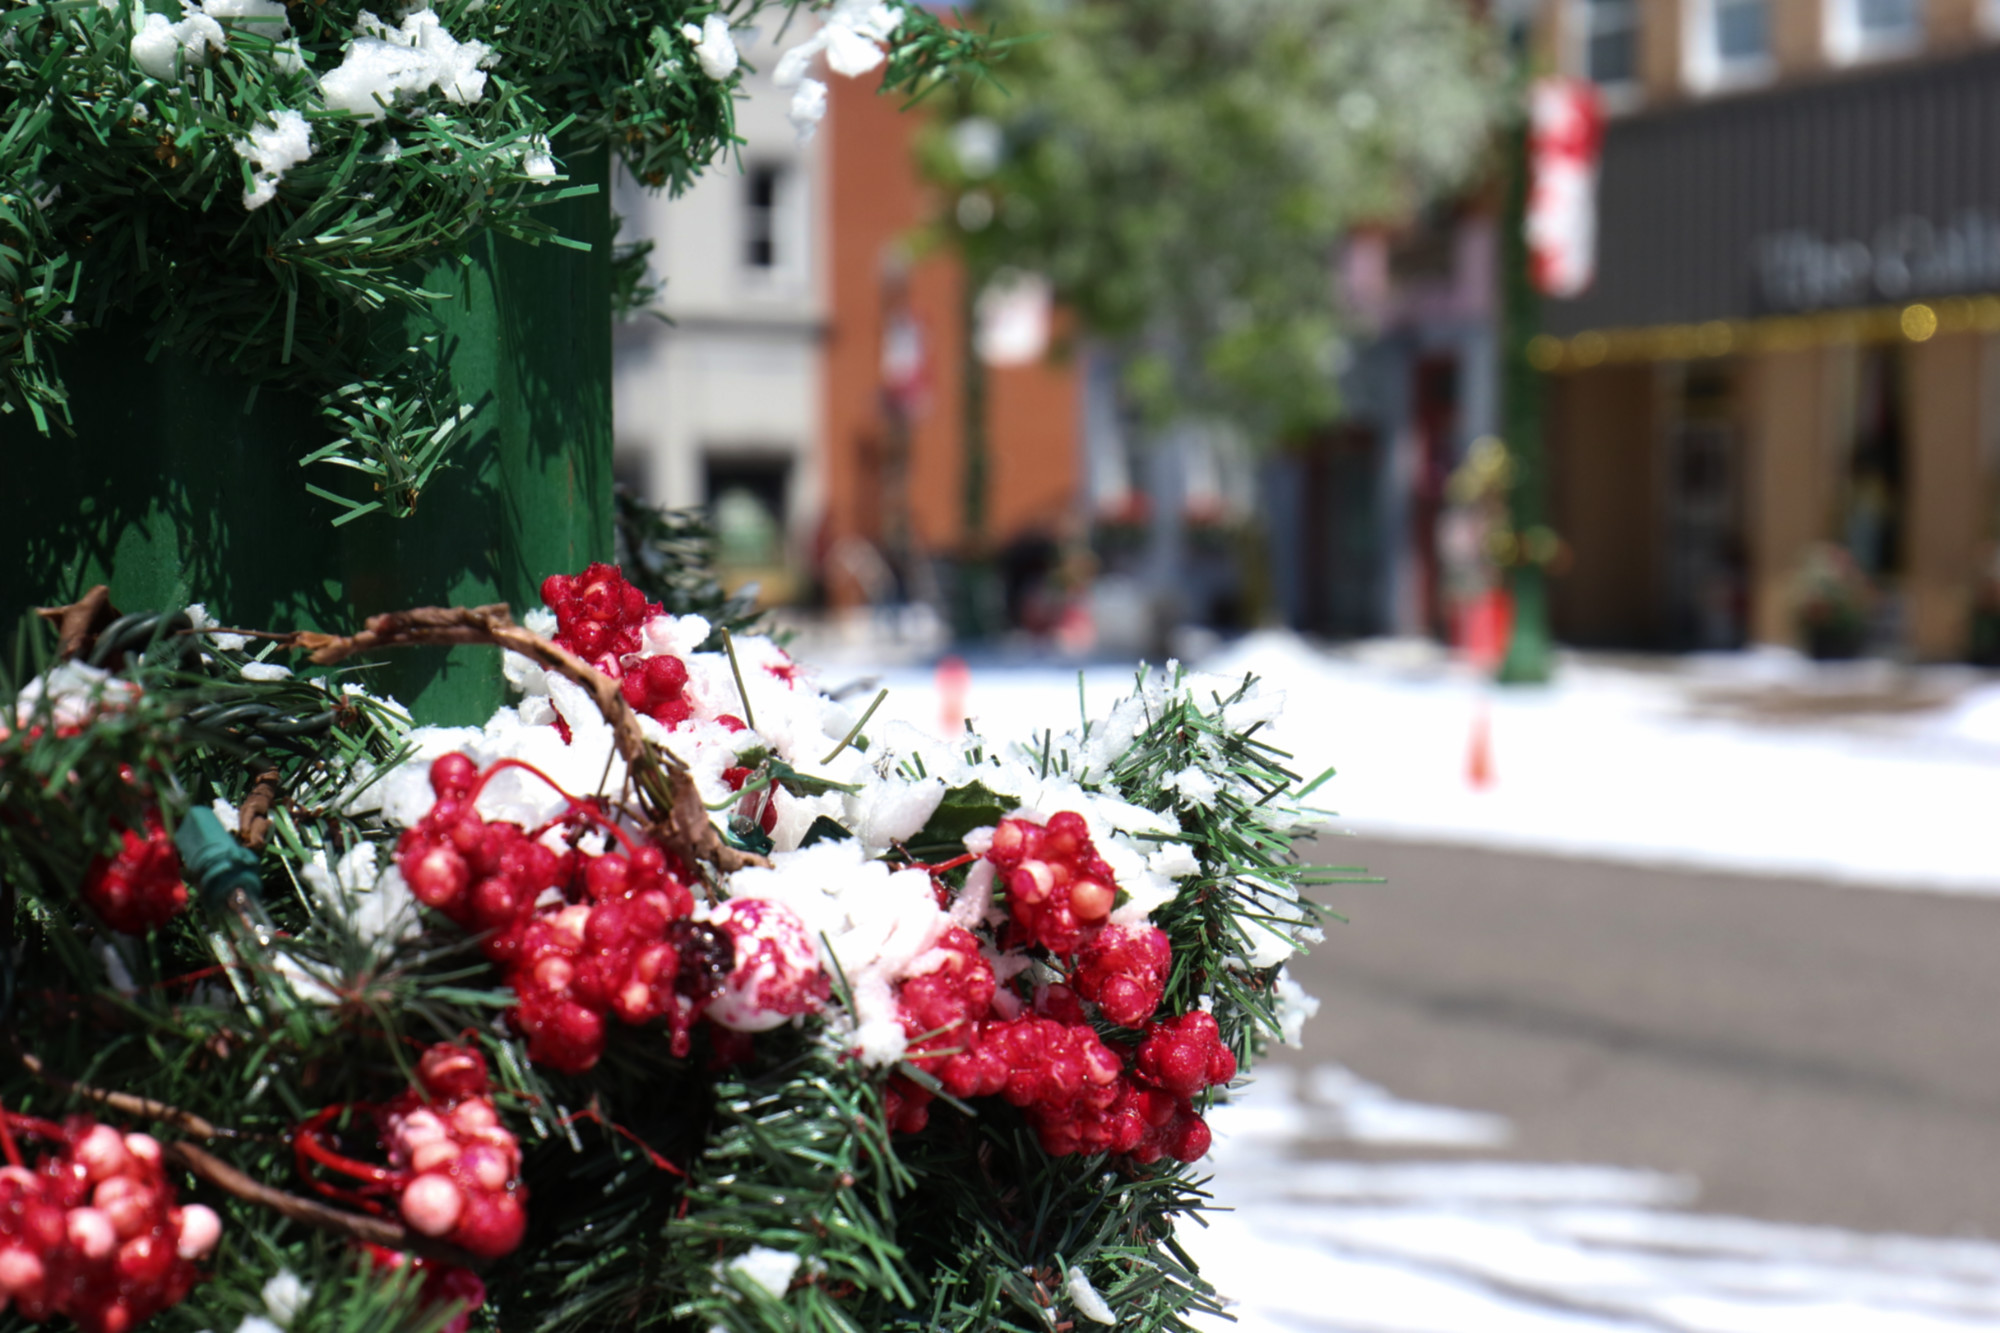 Christmas Camp Hallmark Cast.Film Crew Hoses Down Queen Street With Fake Snow For